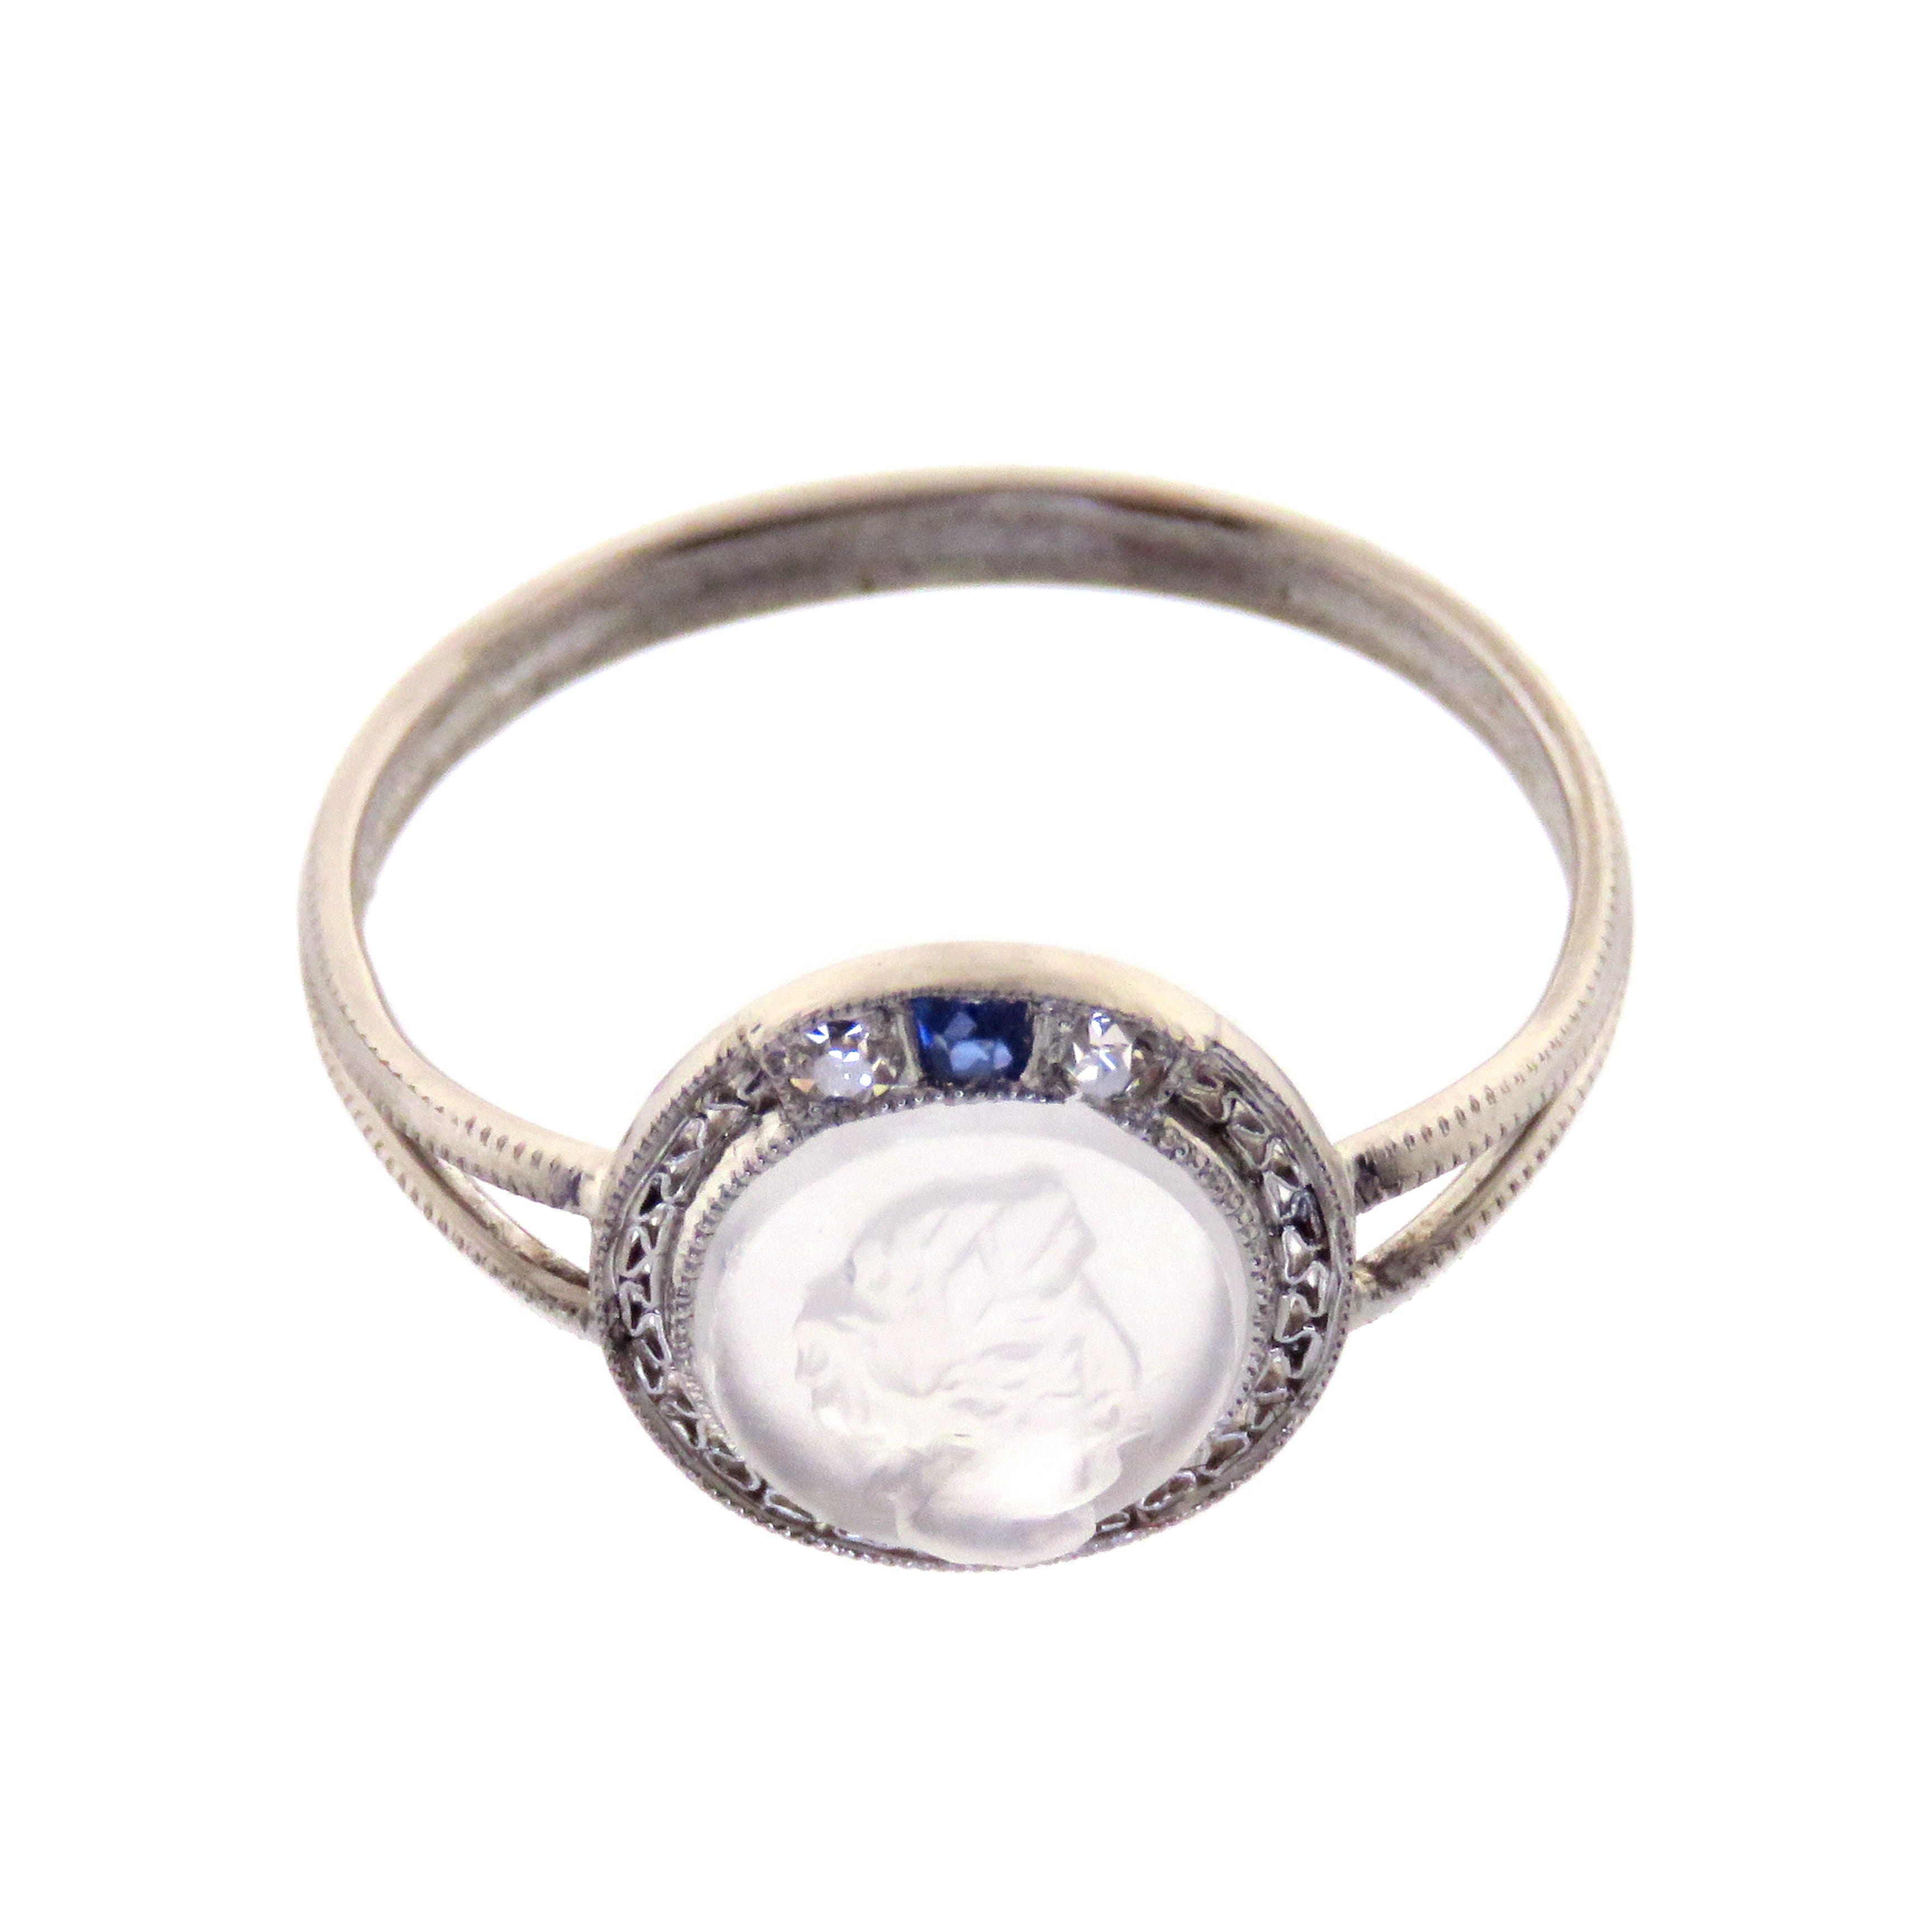 Platinum Moonstone Cameo Ring with Diamond and Sapphire